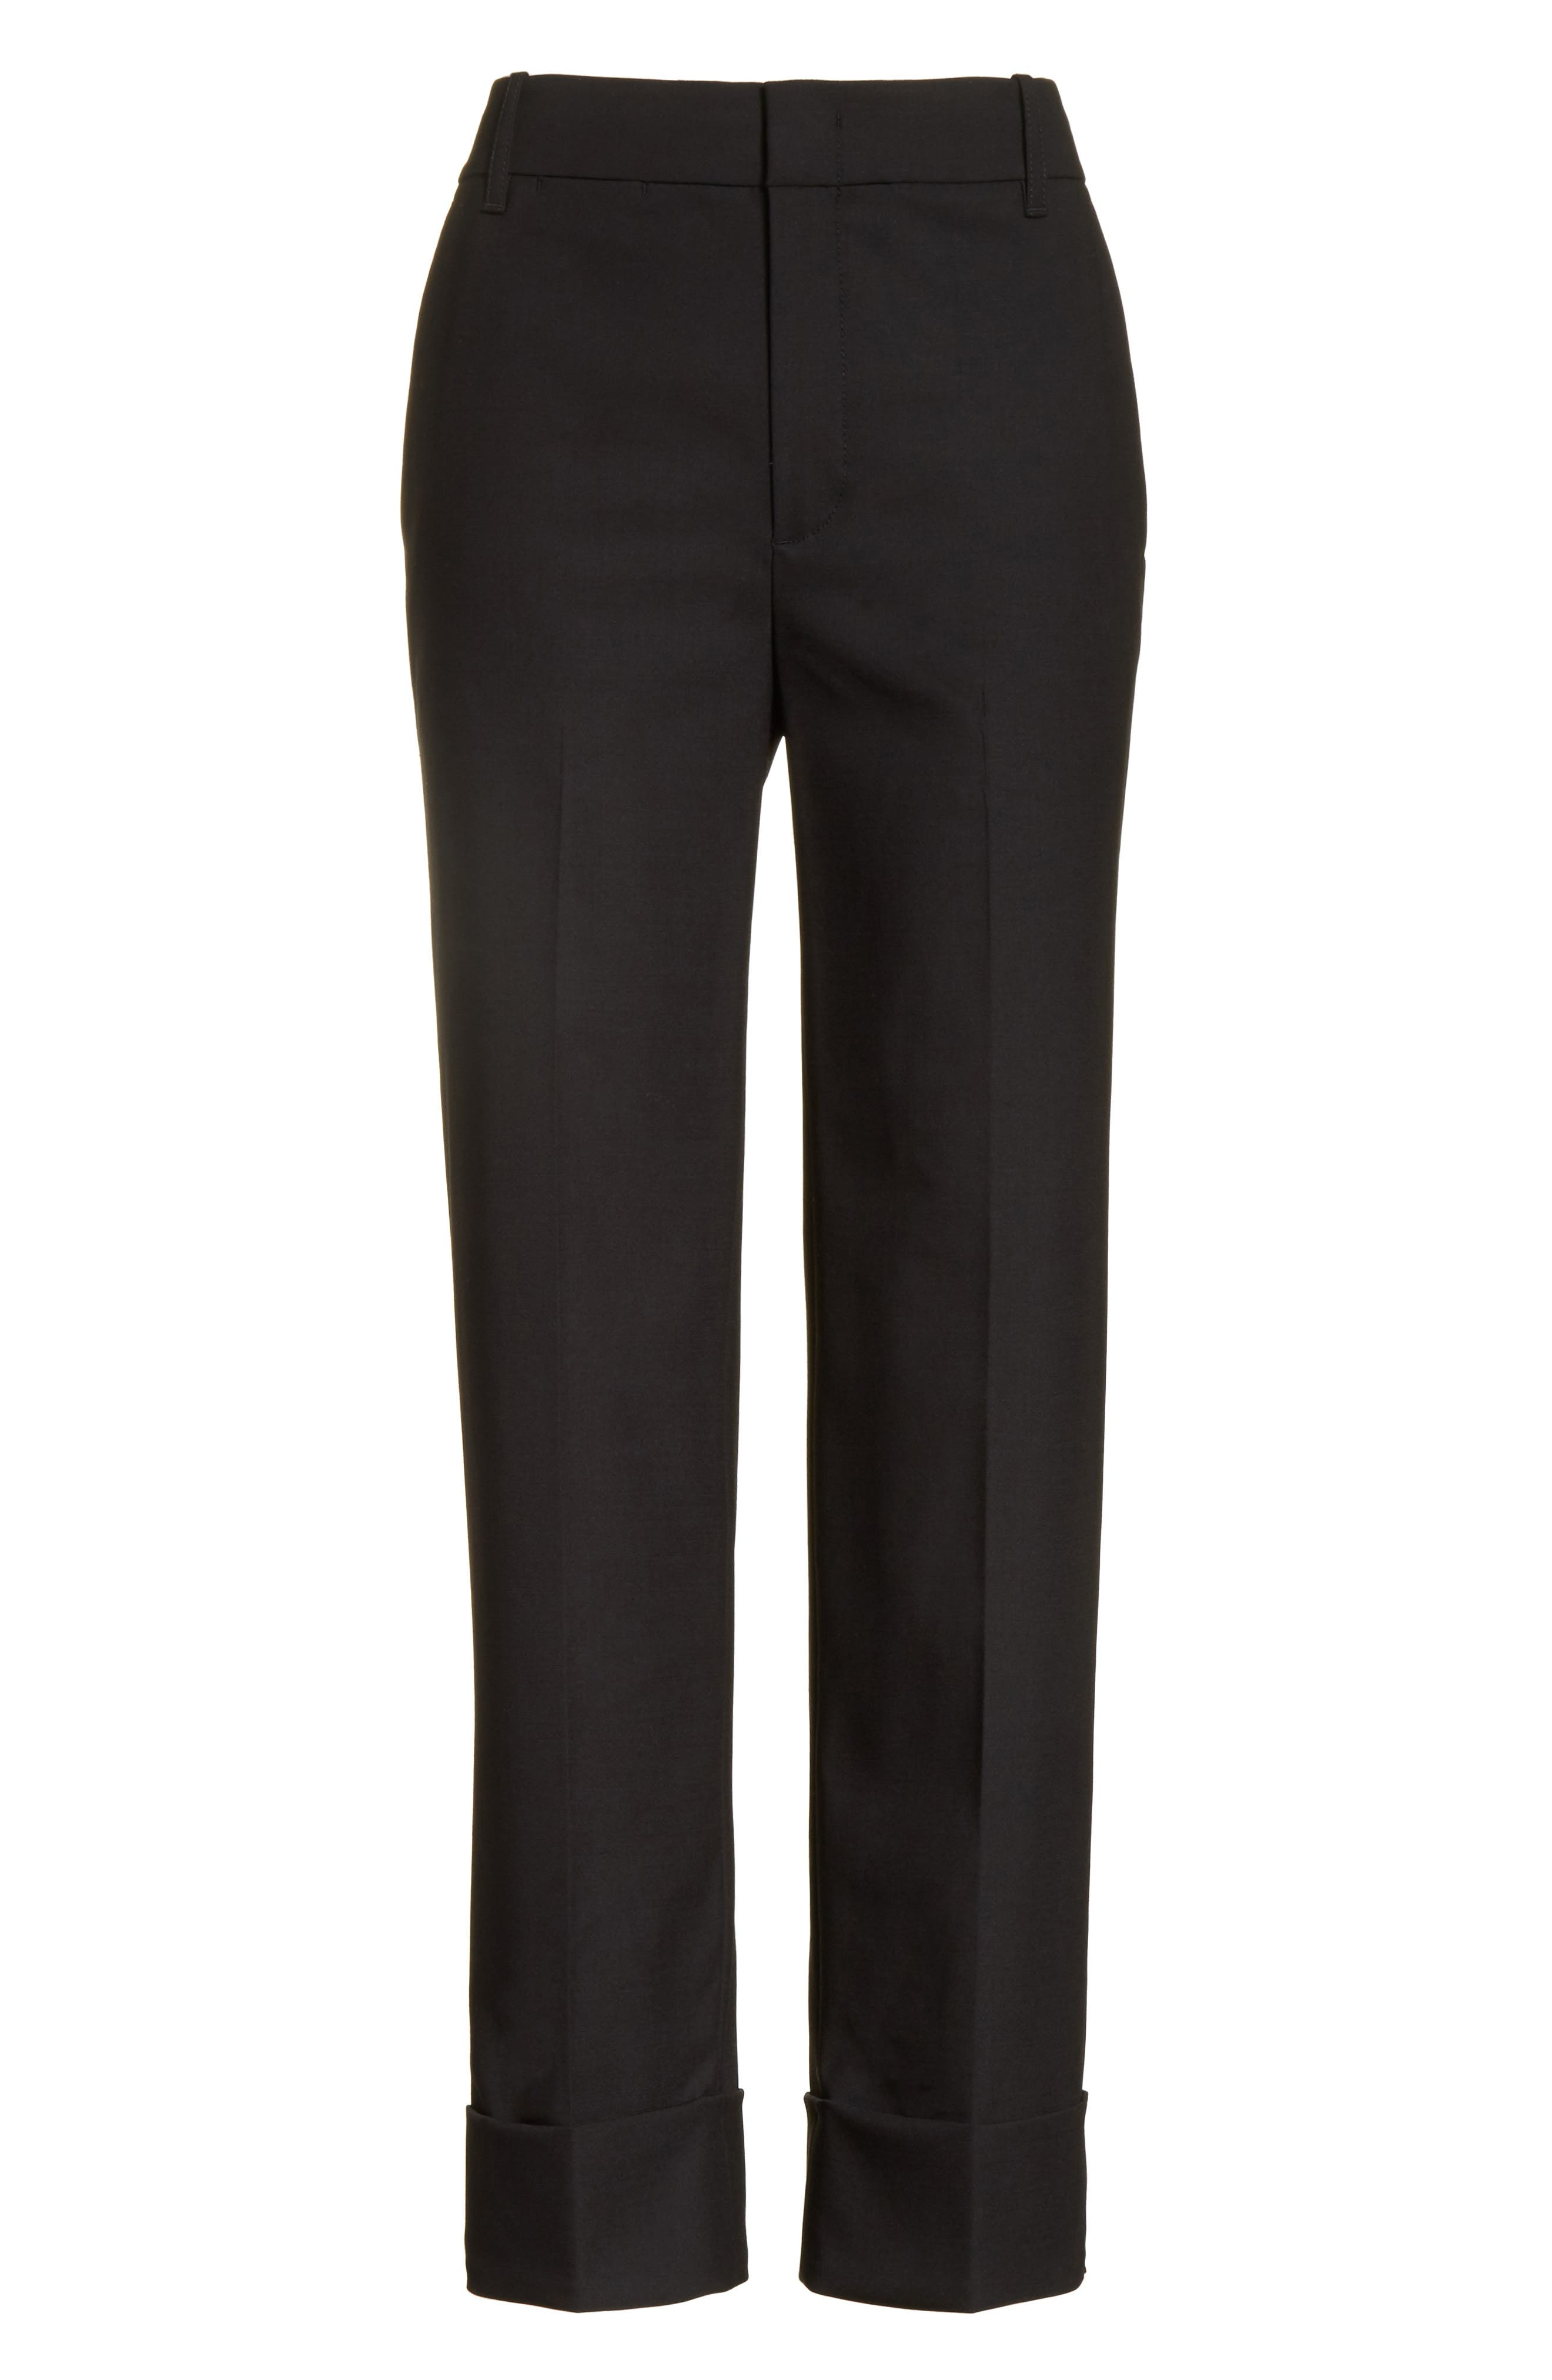 Cuffed Coin Pocket Trousers,                             Alternate thumbnail 6, color,                             001